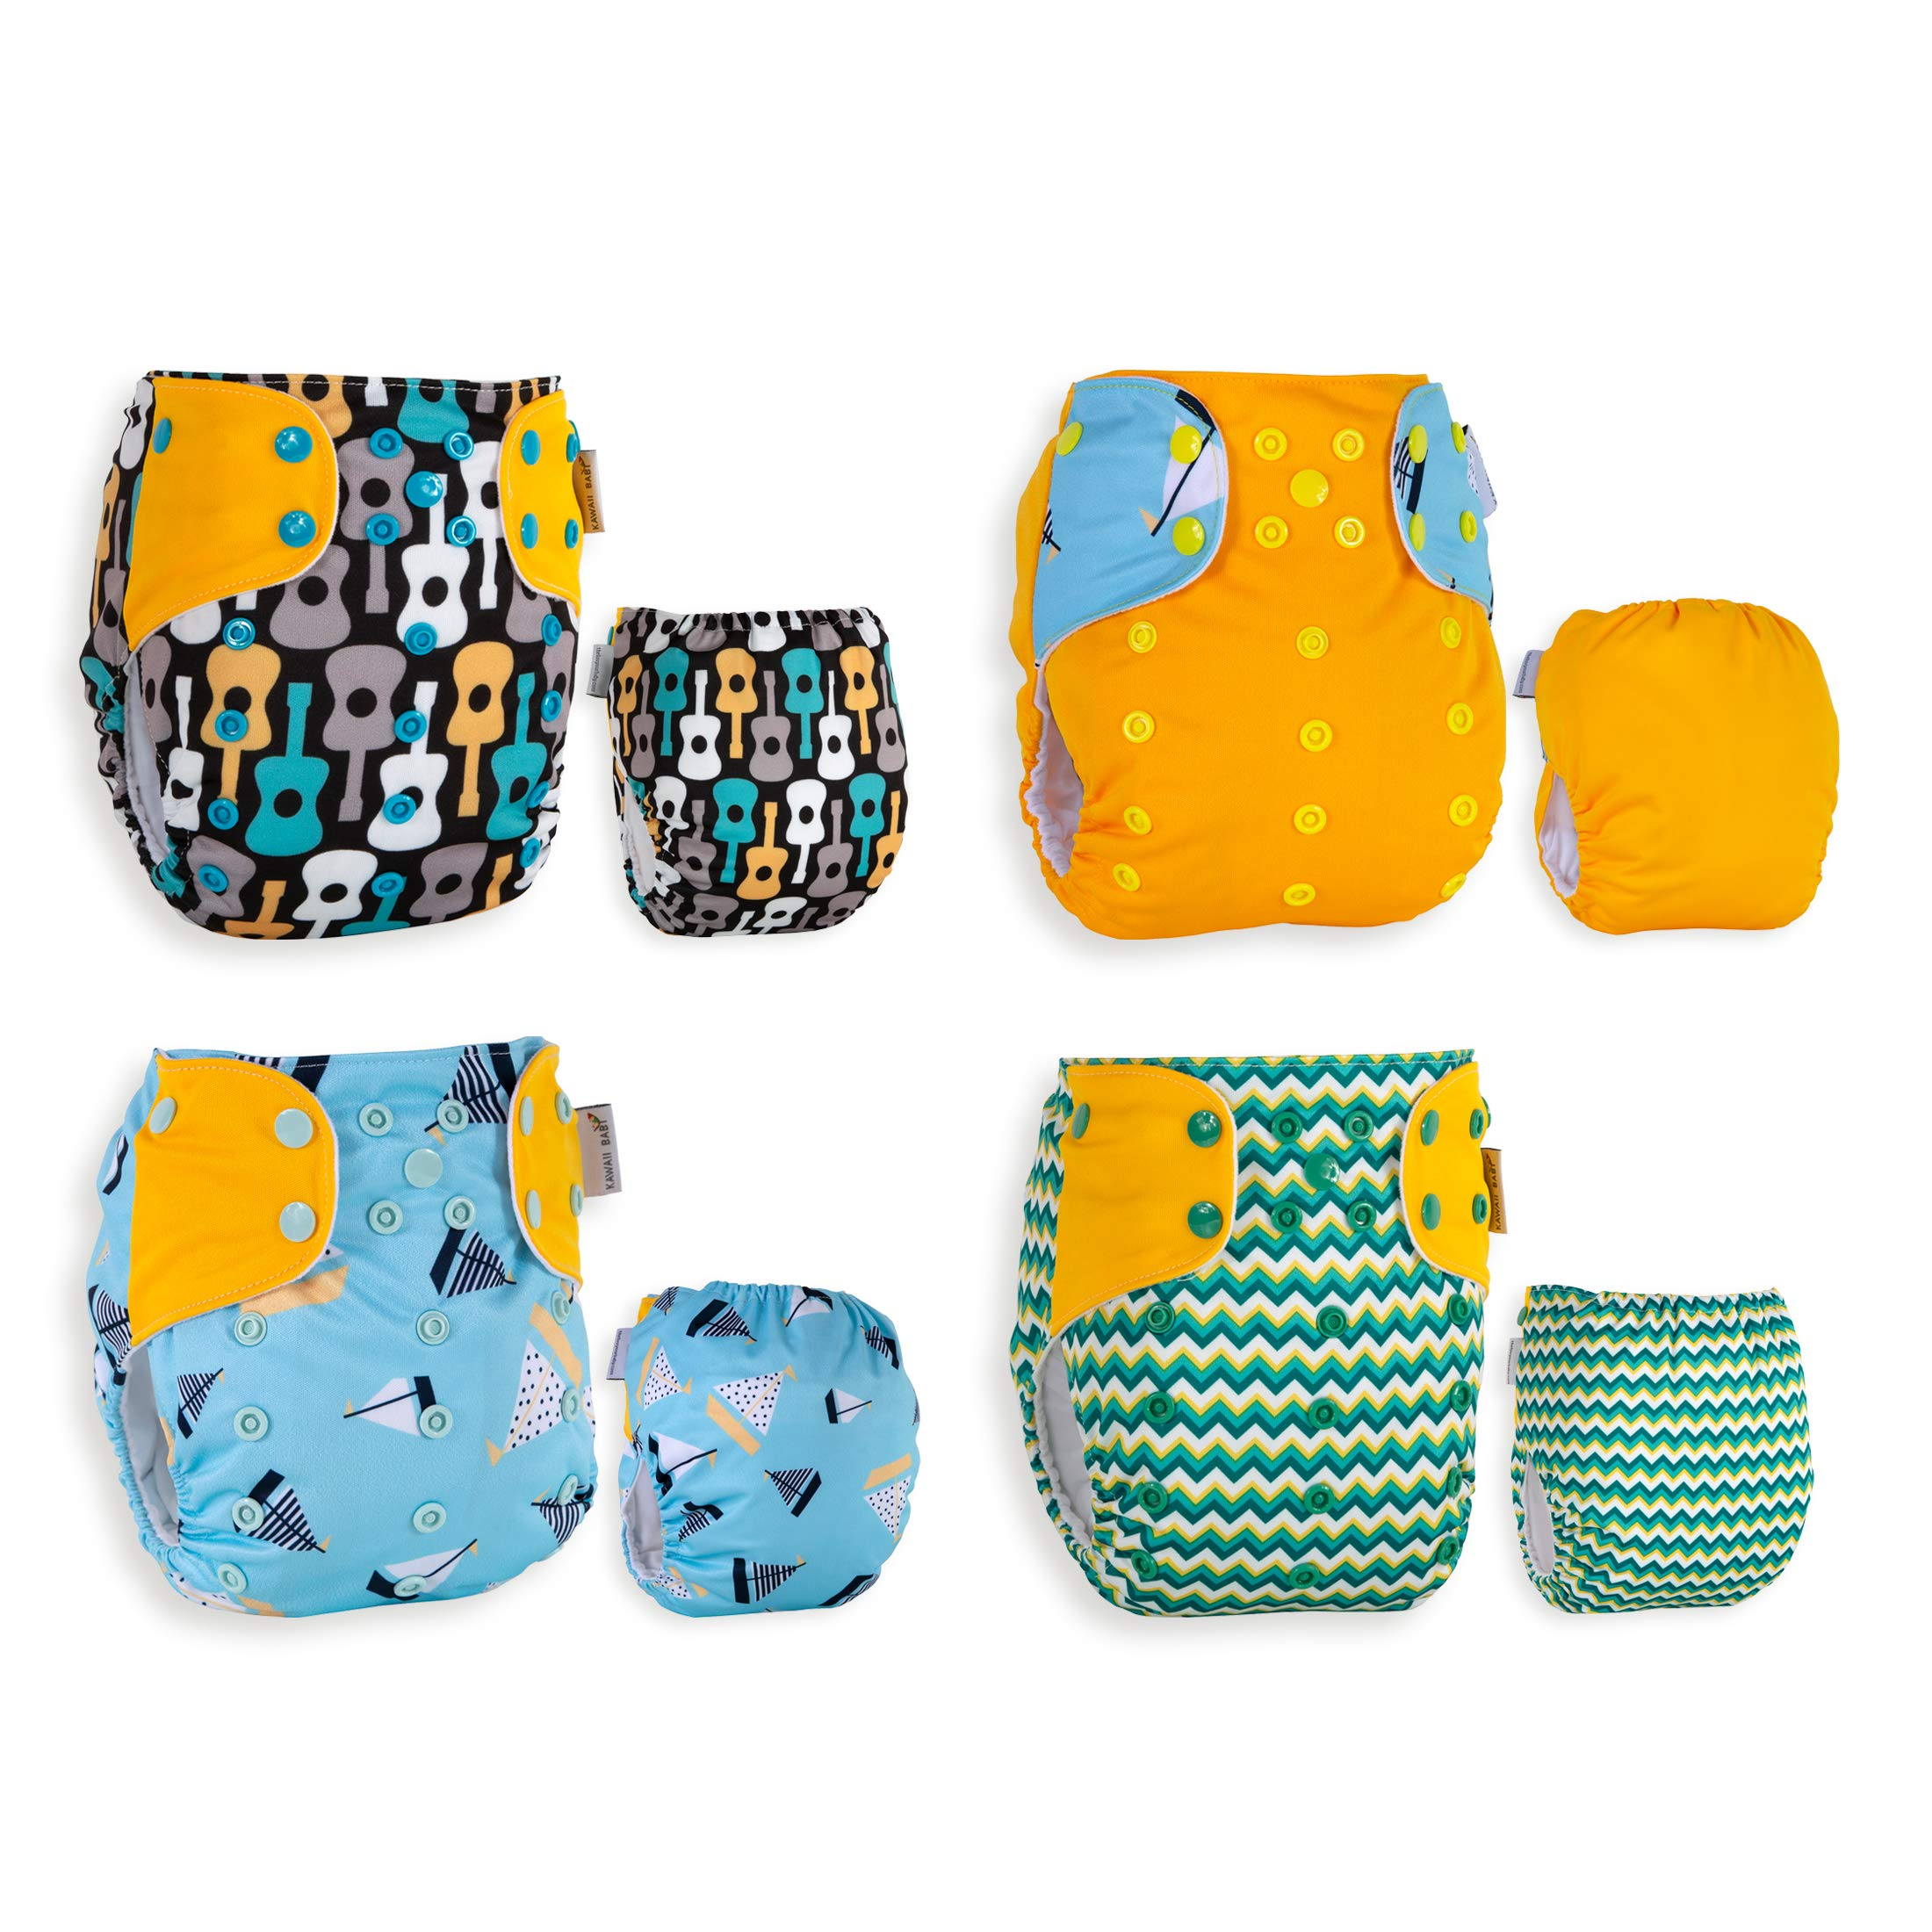 Best Seller! KaWaii Baby 20 One Size Printed Snap Cloth Diaper Shells/Spring Sunshine Theme/Reusable/Newborn to Toddler by Kawaii Baby (Image #5)